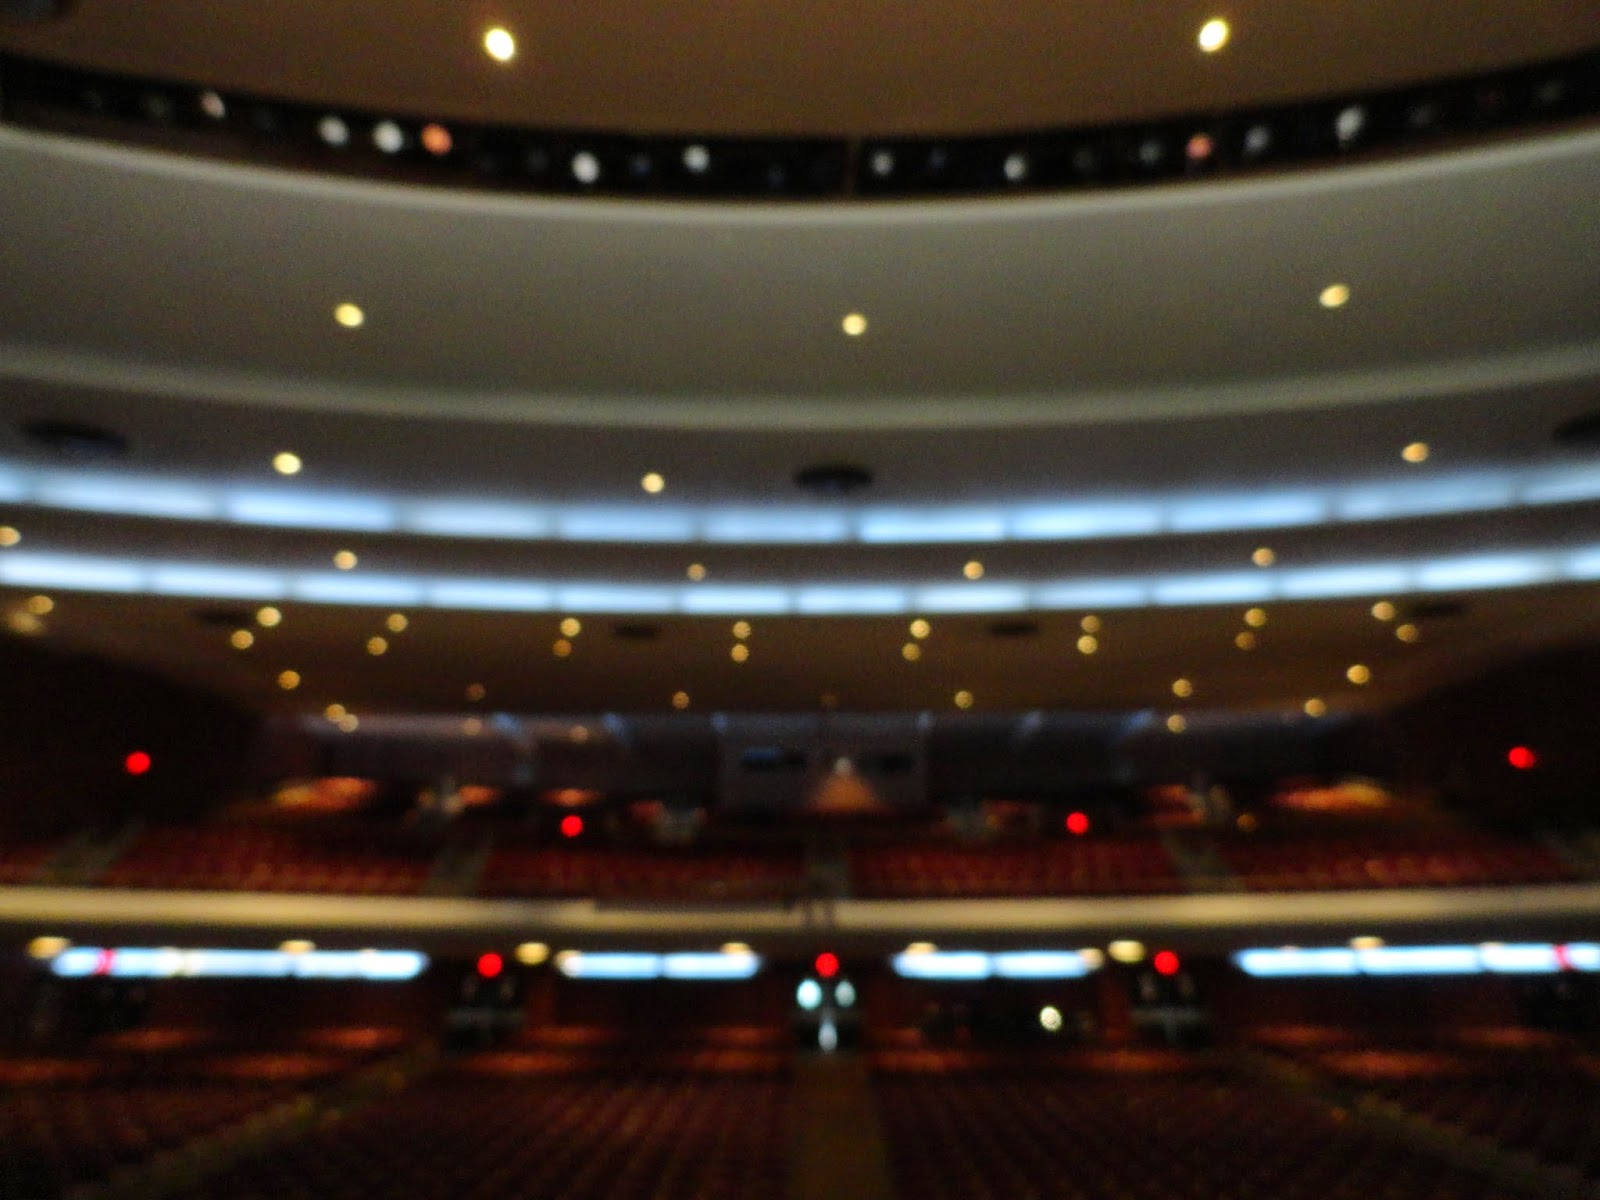 Peabody Auditorium Daytona Beach Fl